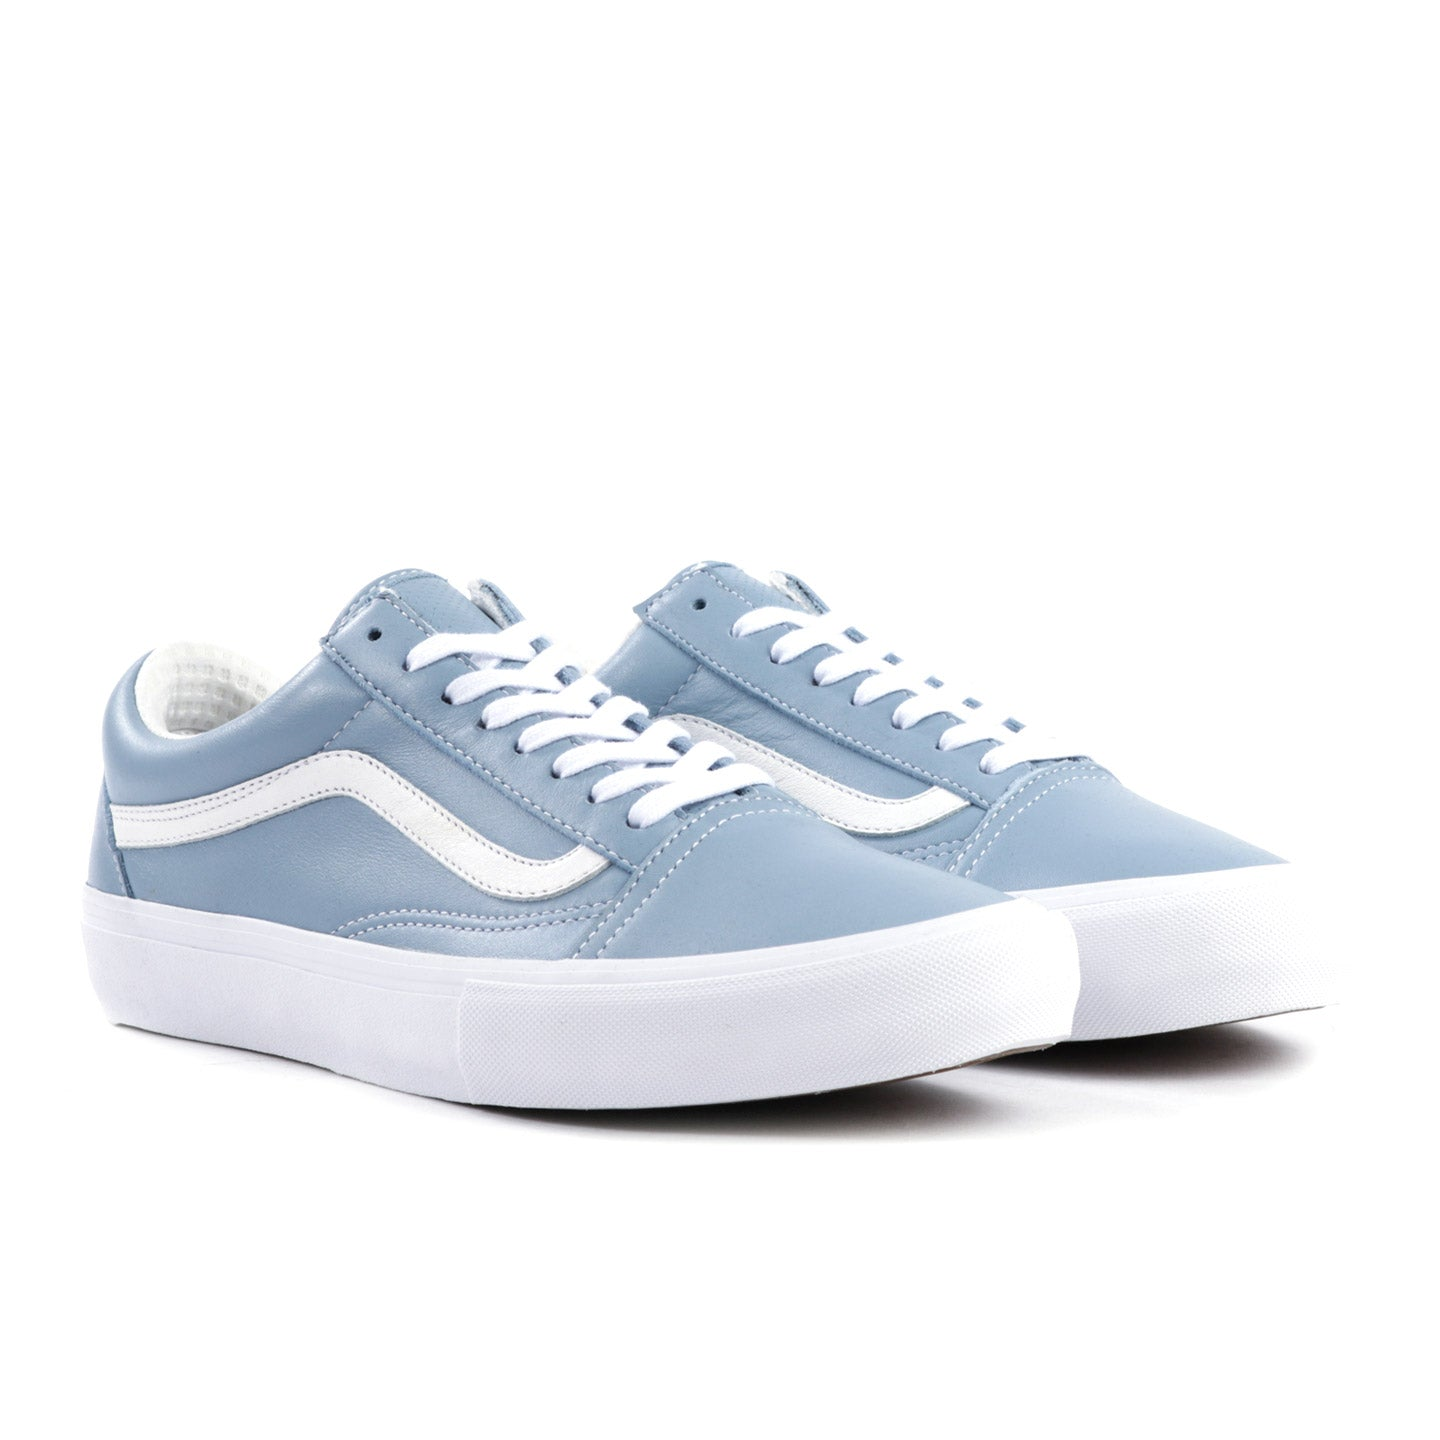 VAULT BY VANS OLD SKOOL LX ITALIAN LEATHER ARCTIC